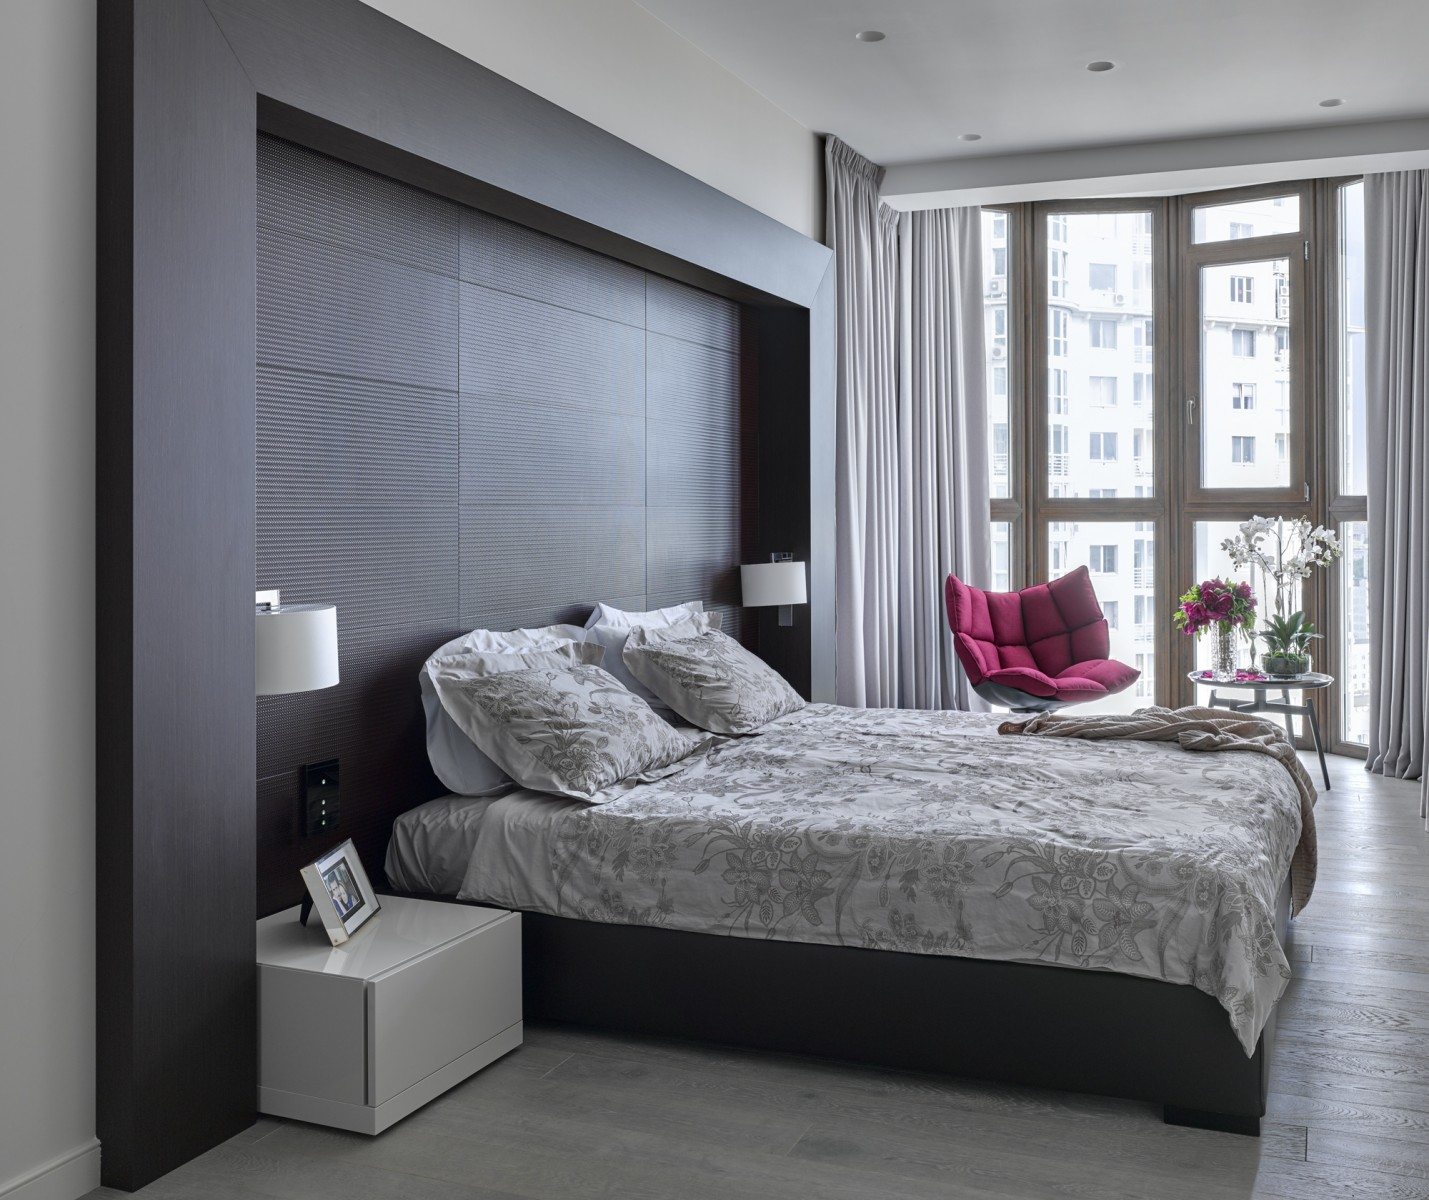 20 Small Bedroom Ideas That Will Leave You Speechless ... on Small Room Pallet Bedroom Ideas  id=12545